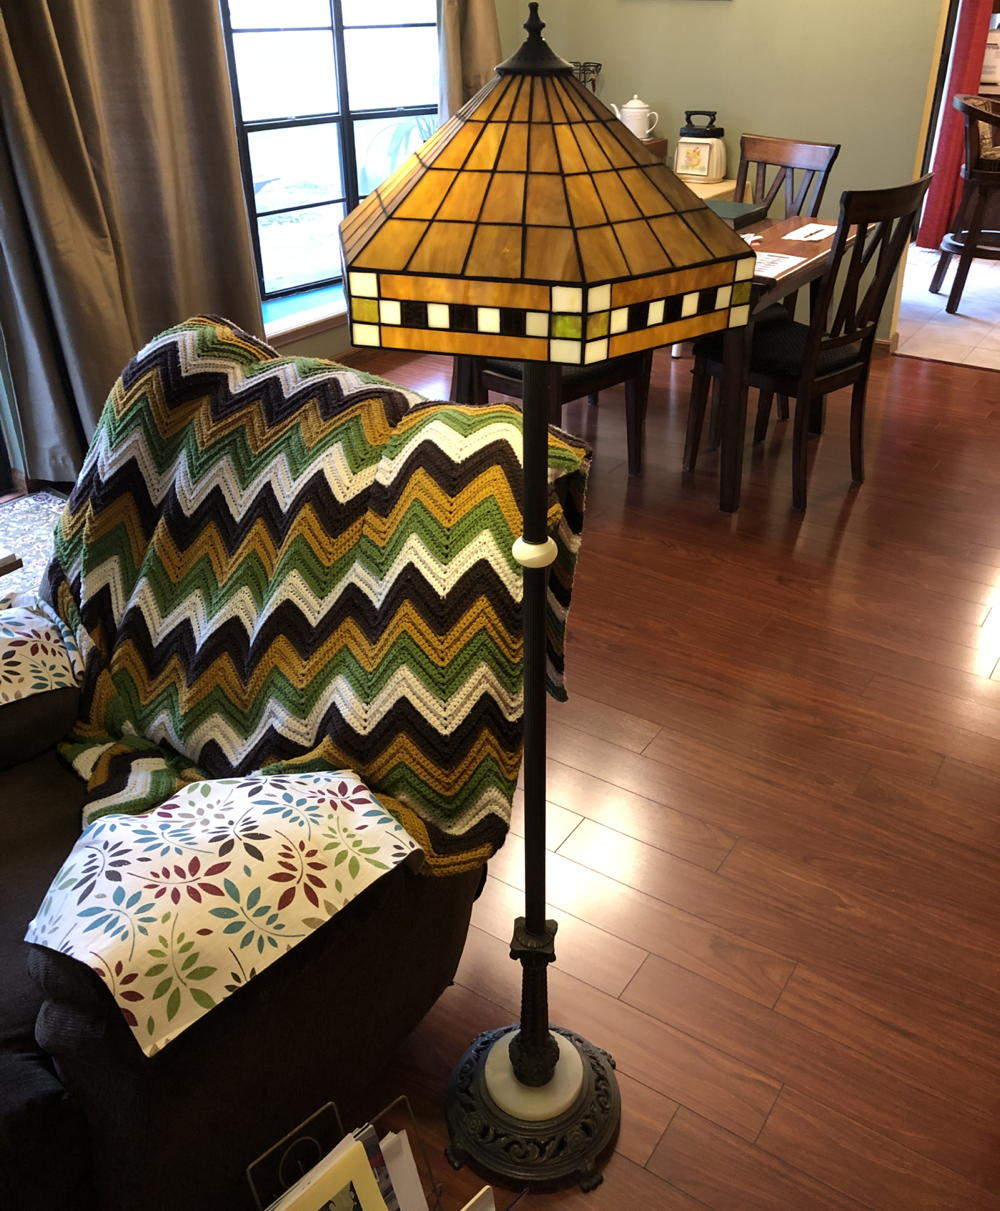 Battery-operated floor lamp